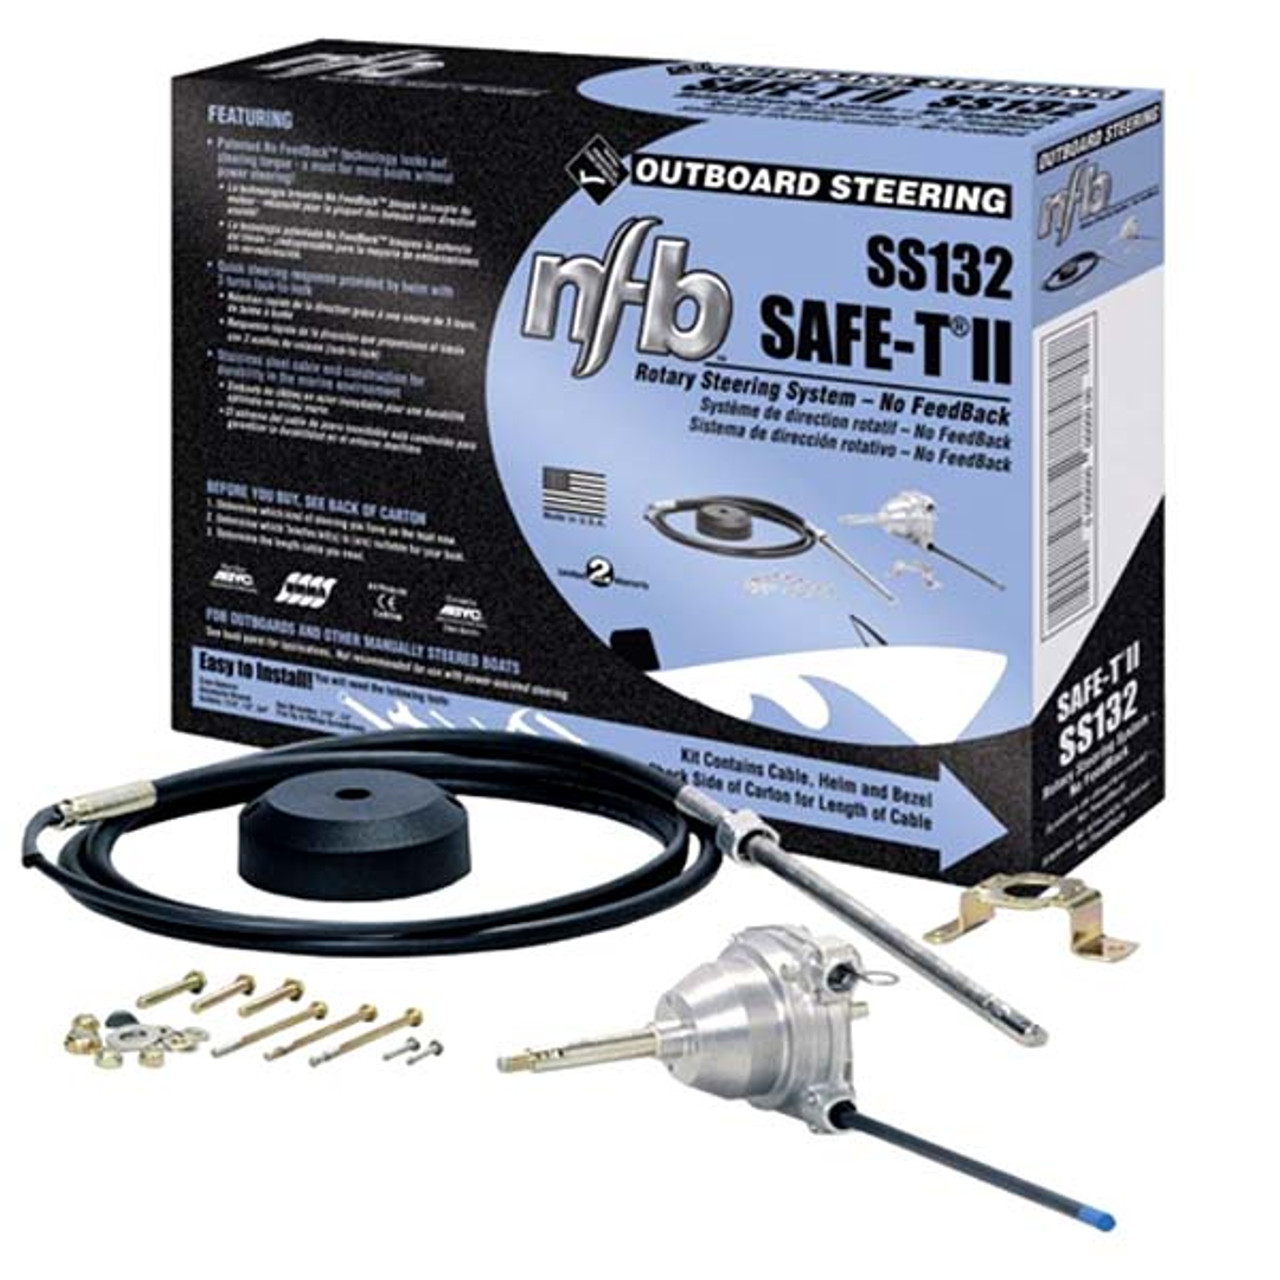 Nfb Safe T Ii Mechanical Rotary Steering System